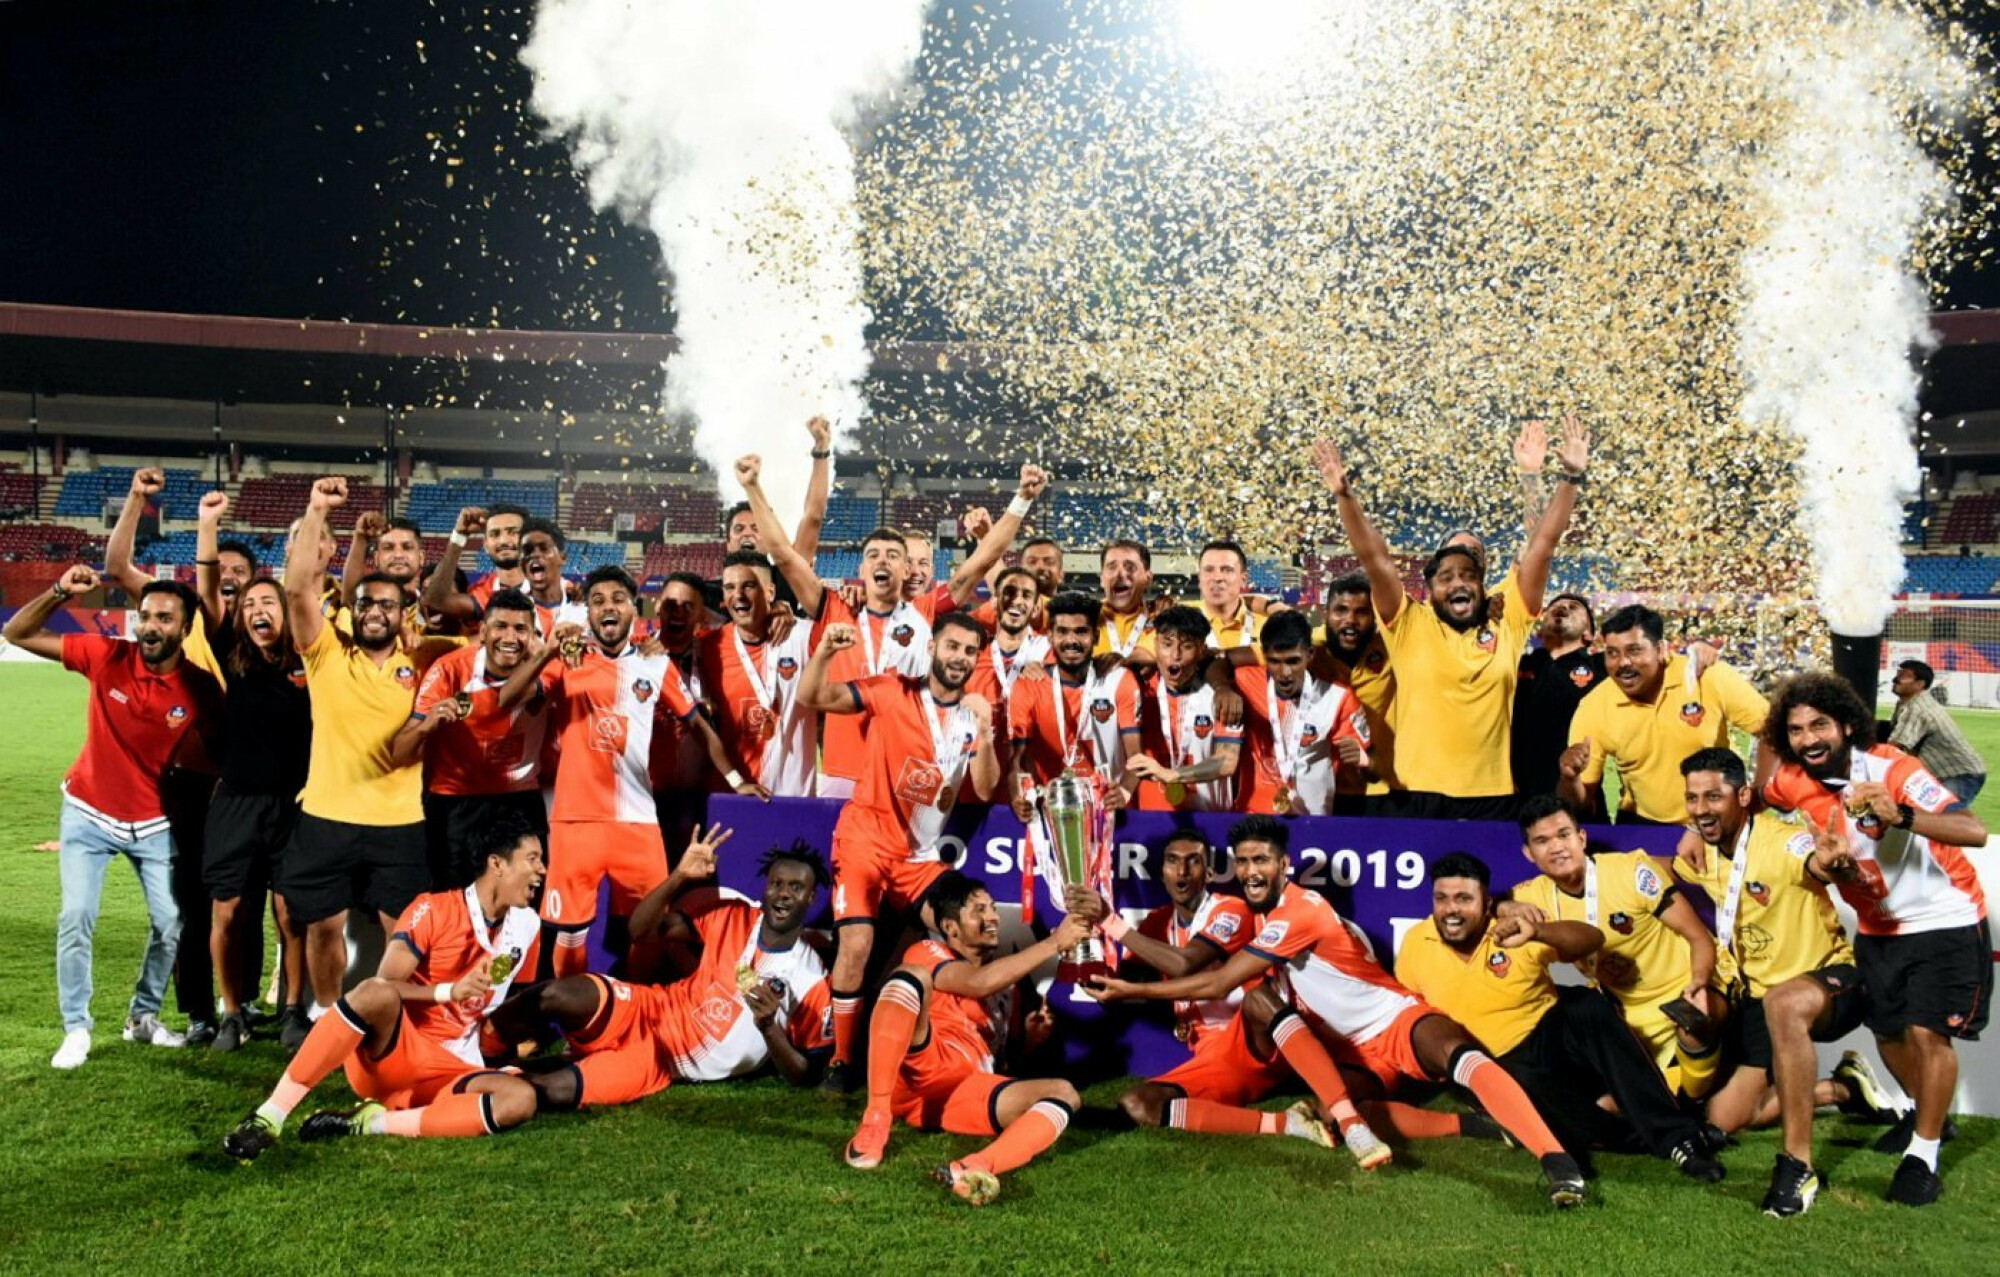 Super Cup 2019: FC Goa defeat Chennaiyin to lift the trophy.